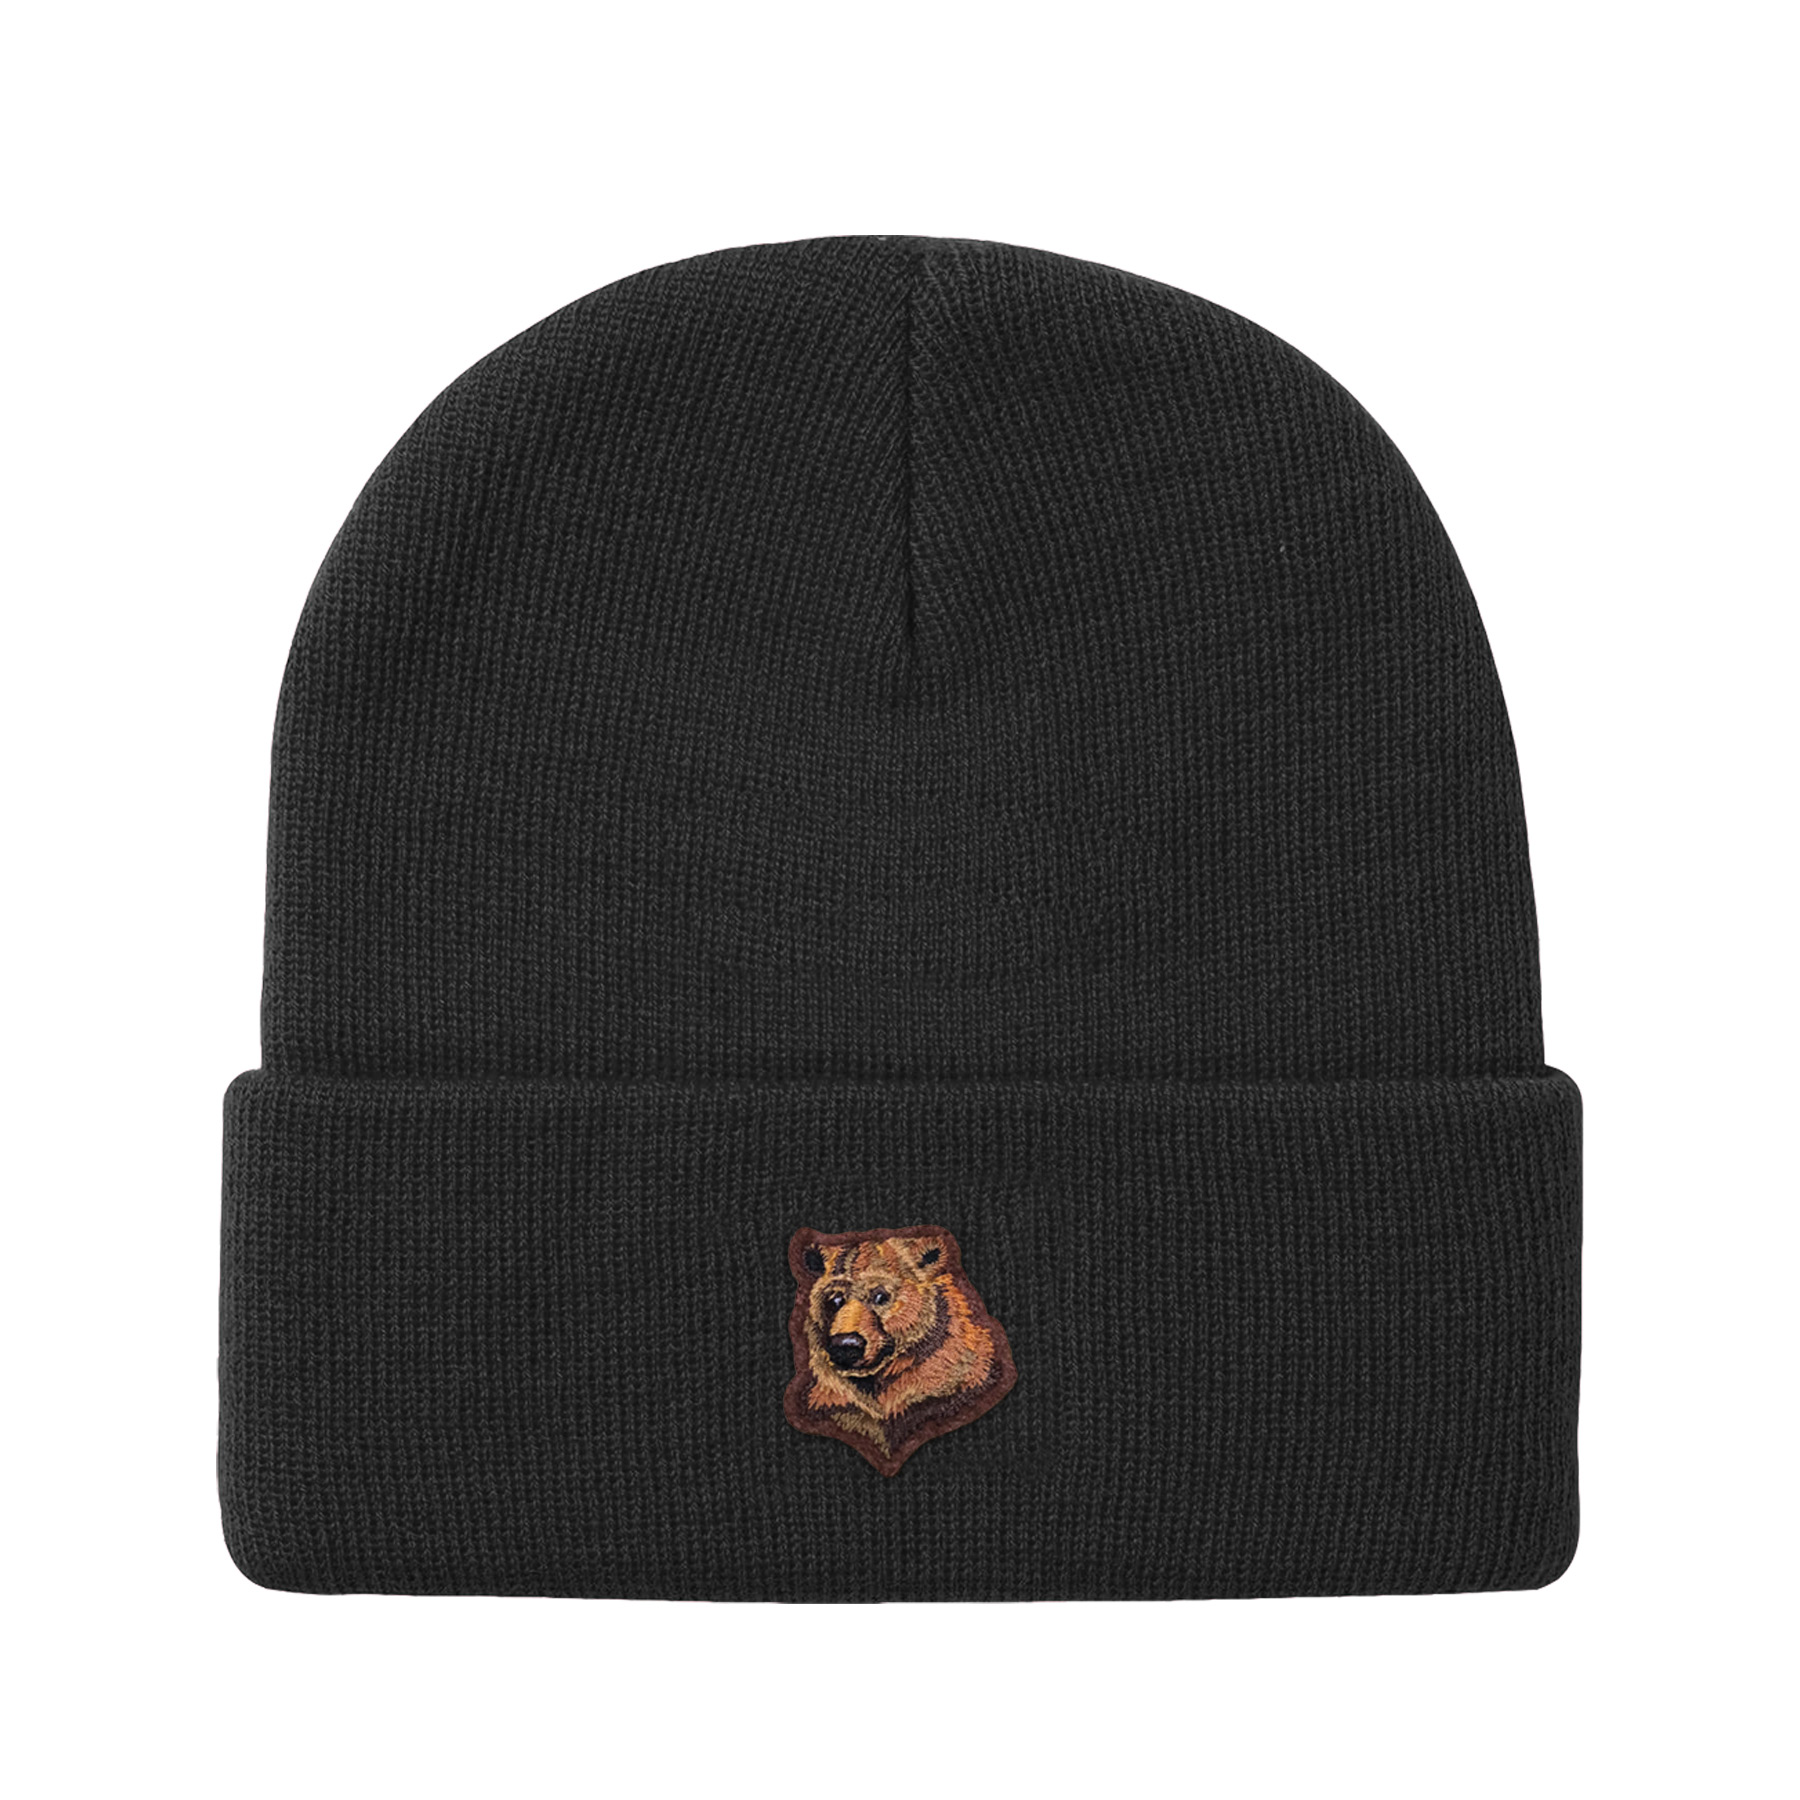 GRZ BEANIE BEAR BLK - Click to enlarge